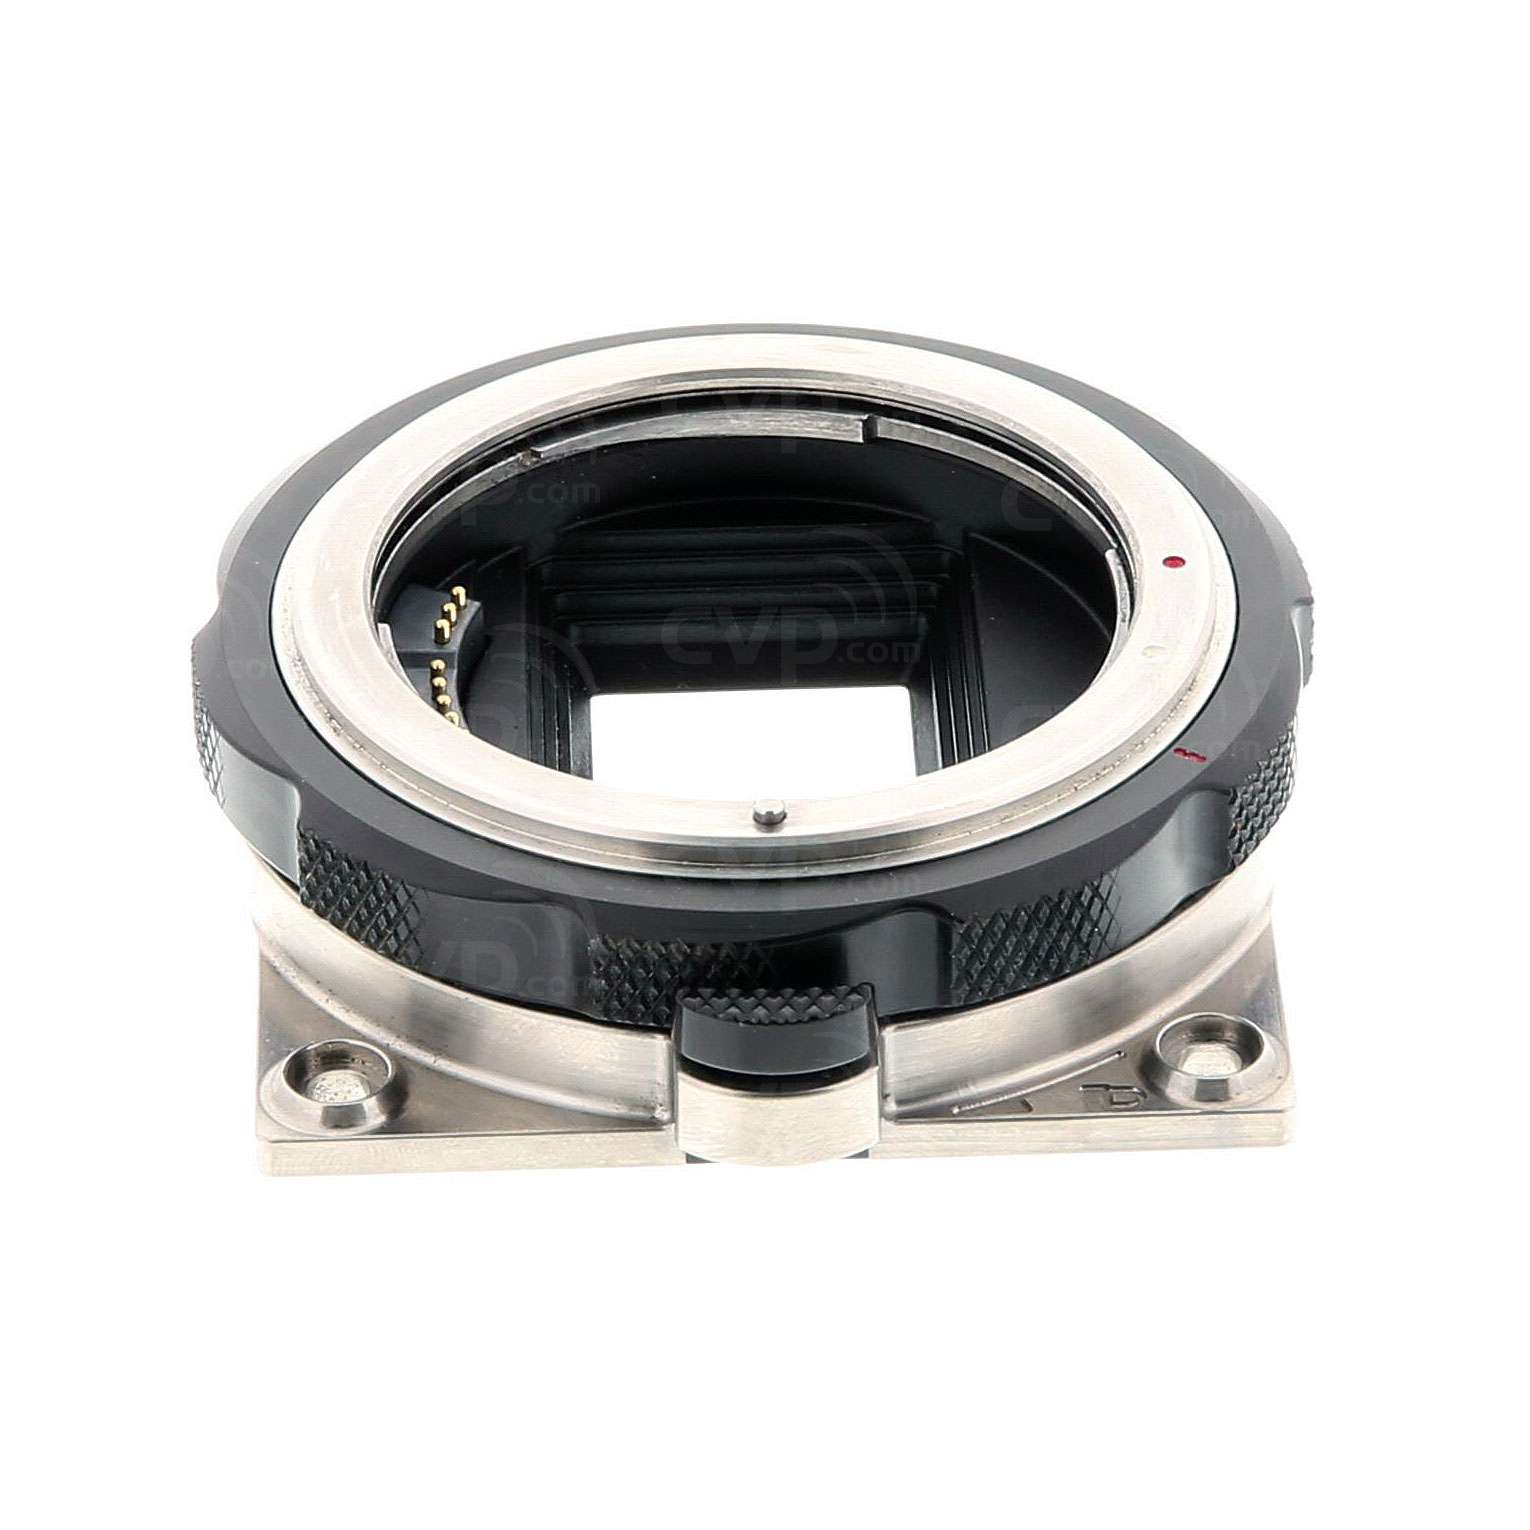 USED RED DSMC Titanium Canon EF Lens Mount Compatible with